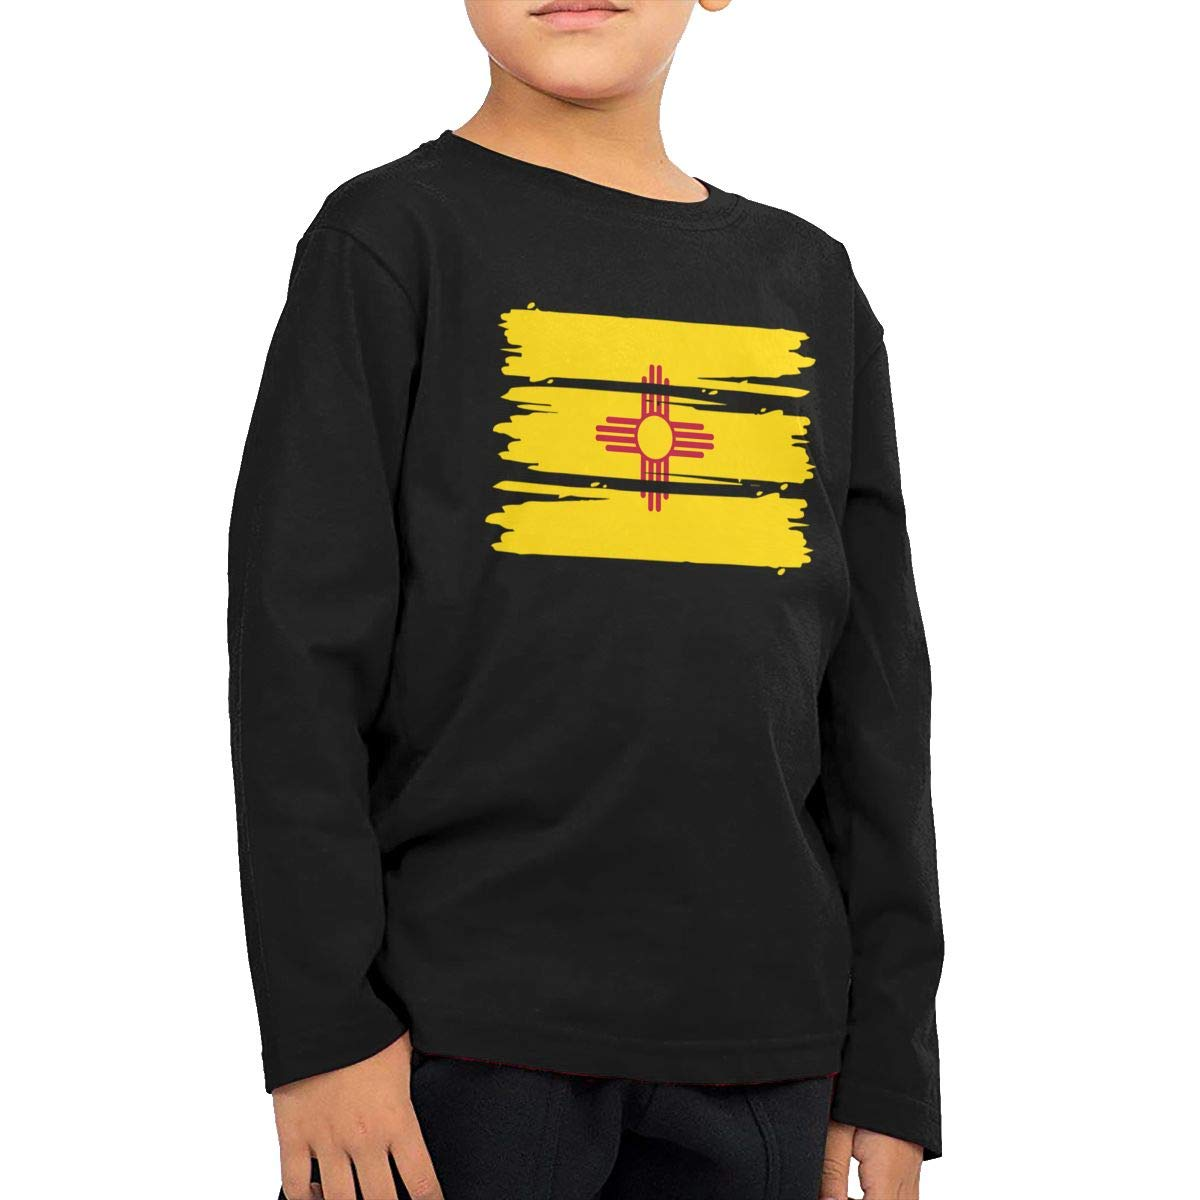 CERTONGCXTS Baby Girls Little Boys New Mexico Flag ComfortSoft Long Sleeve T-Shirt